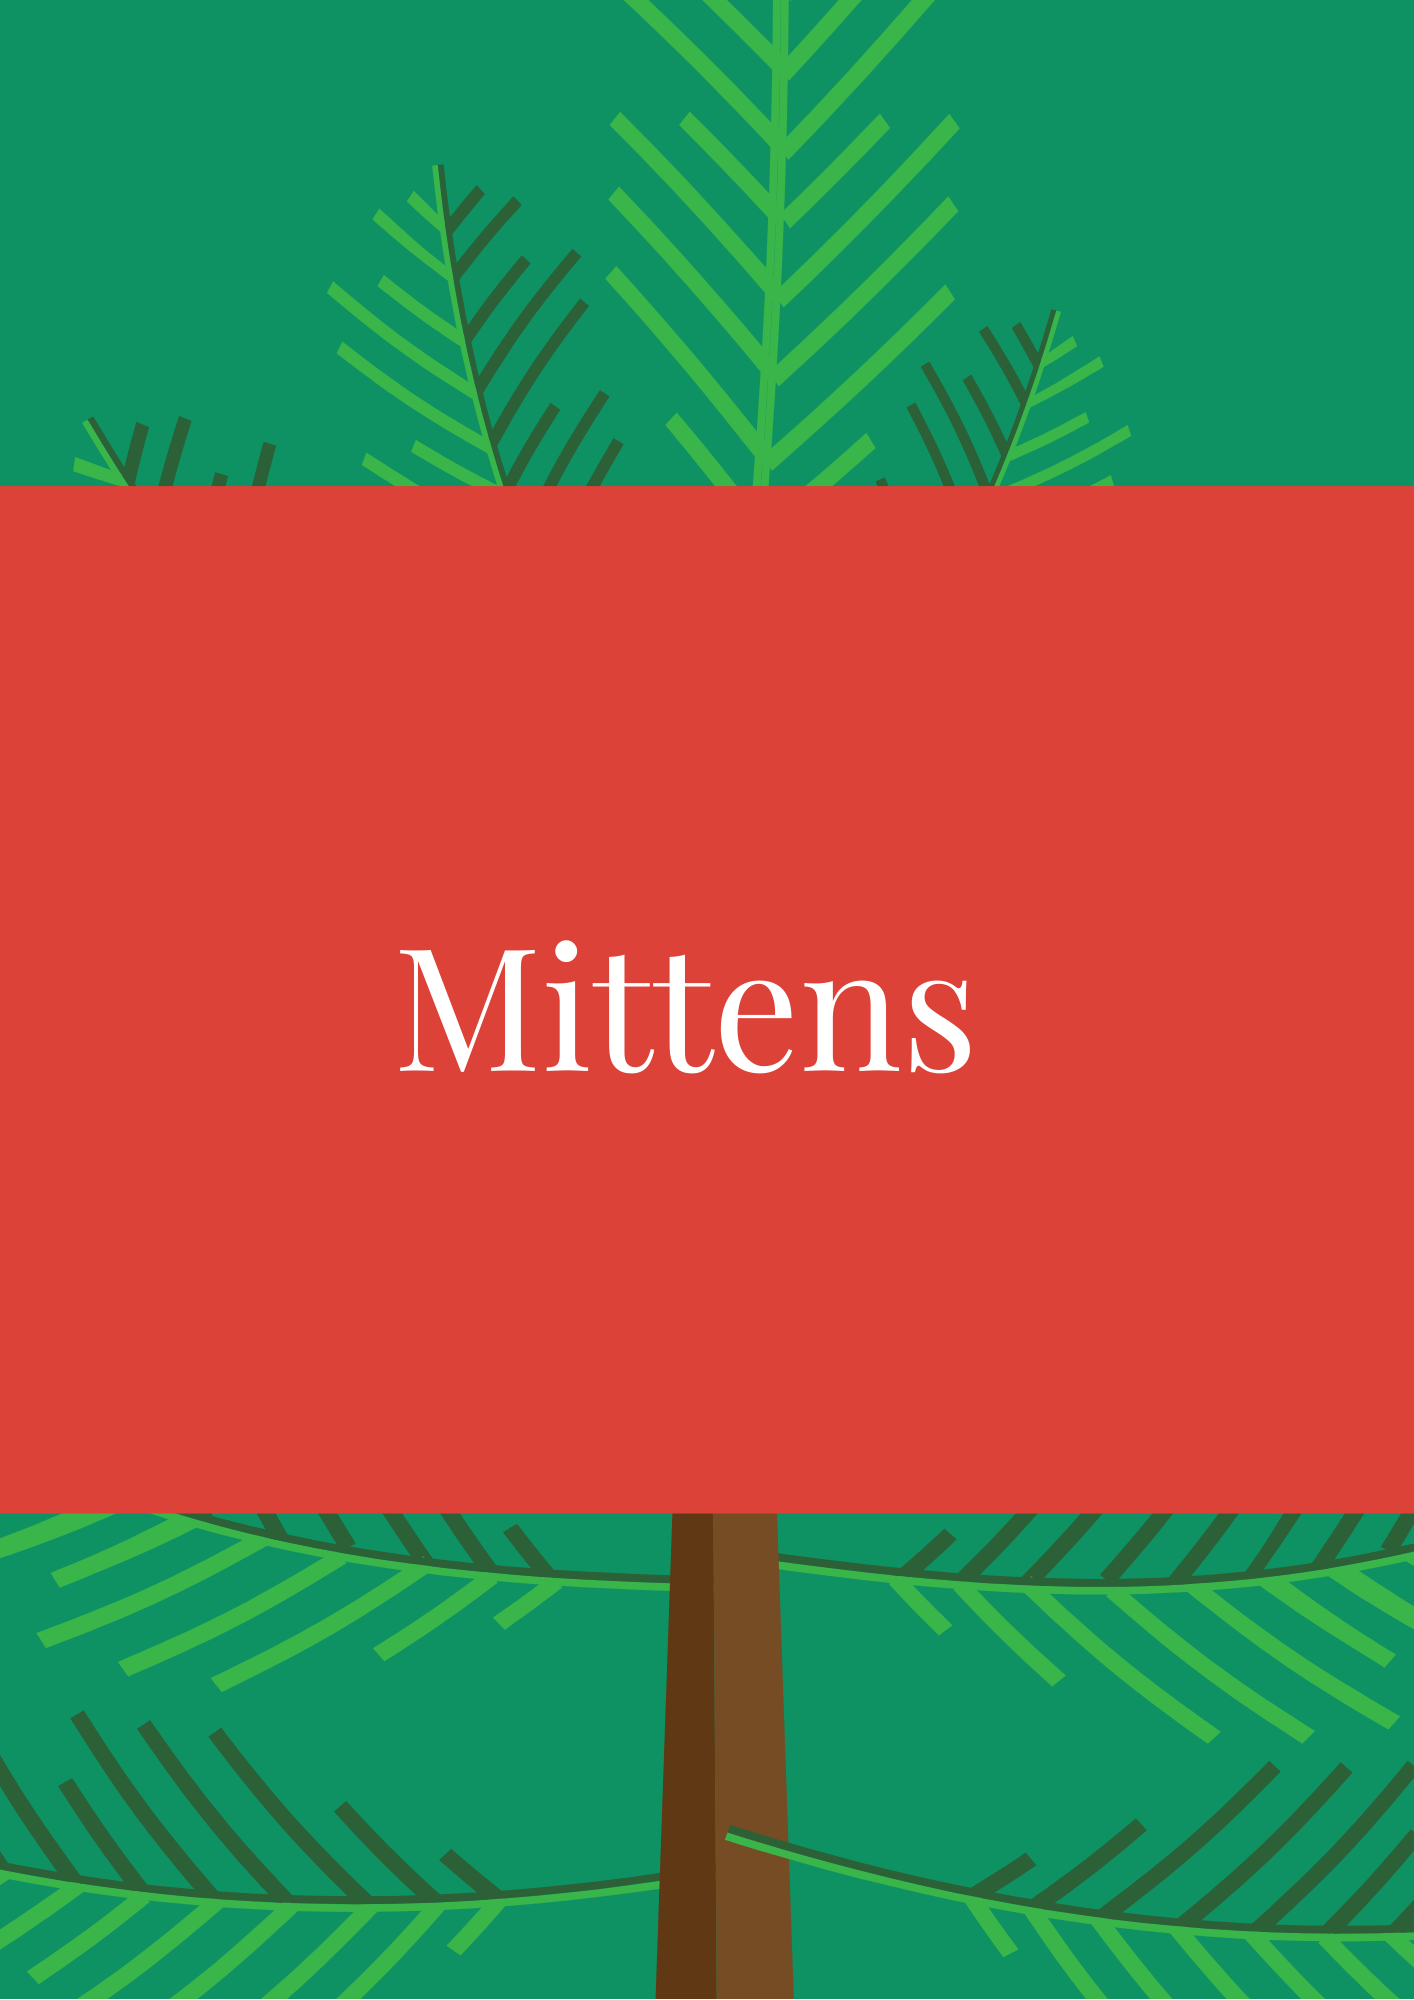 Mittens Elf Names